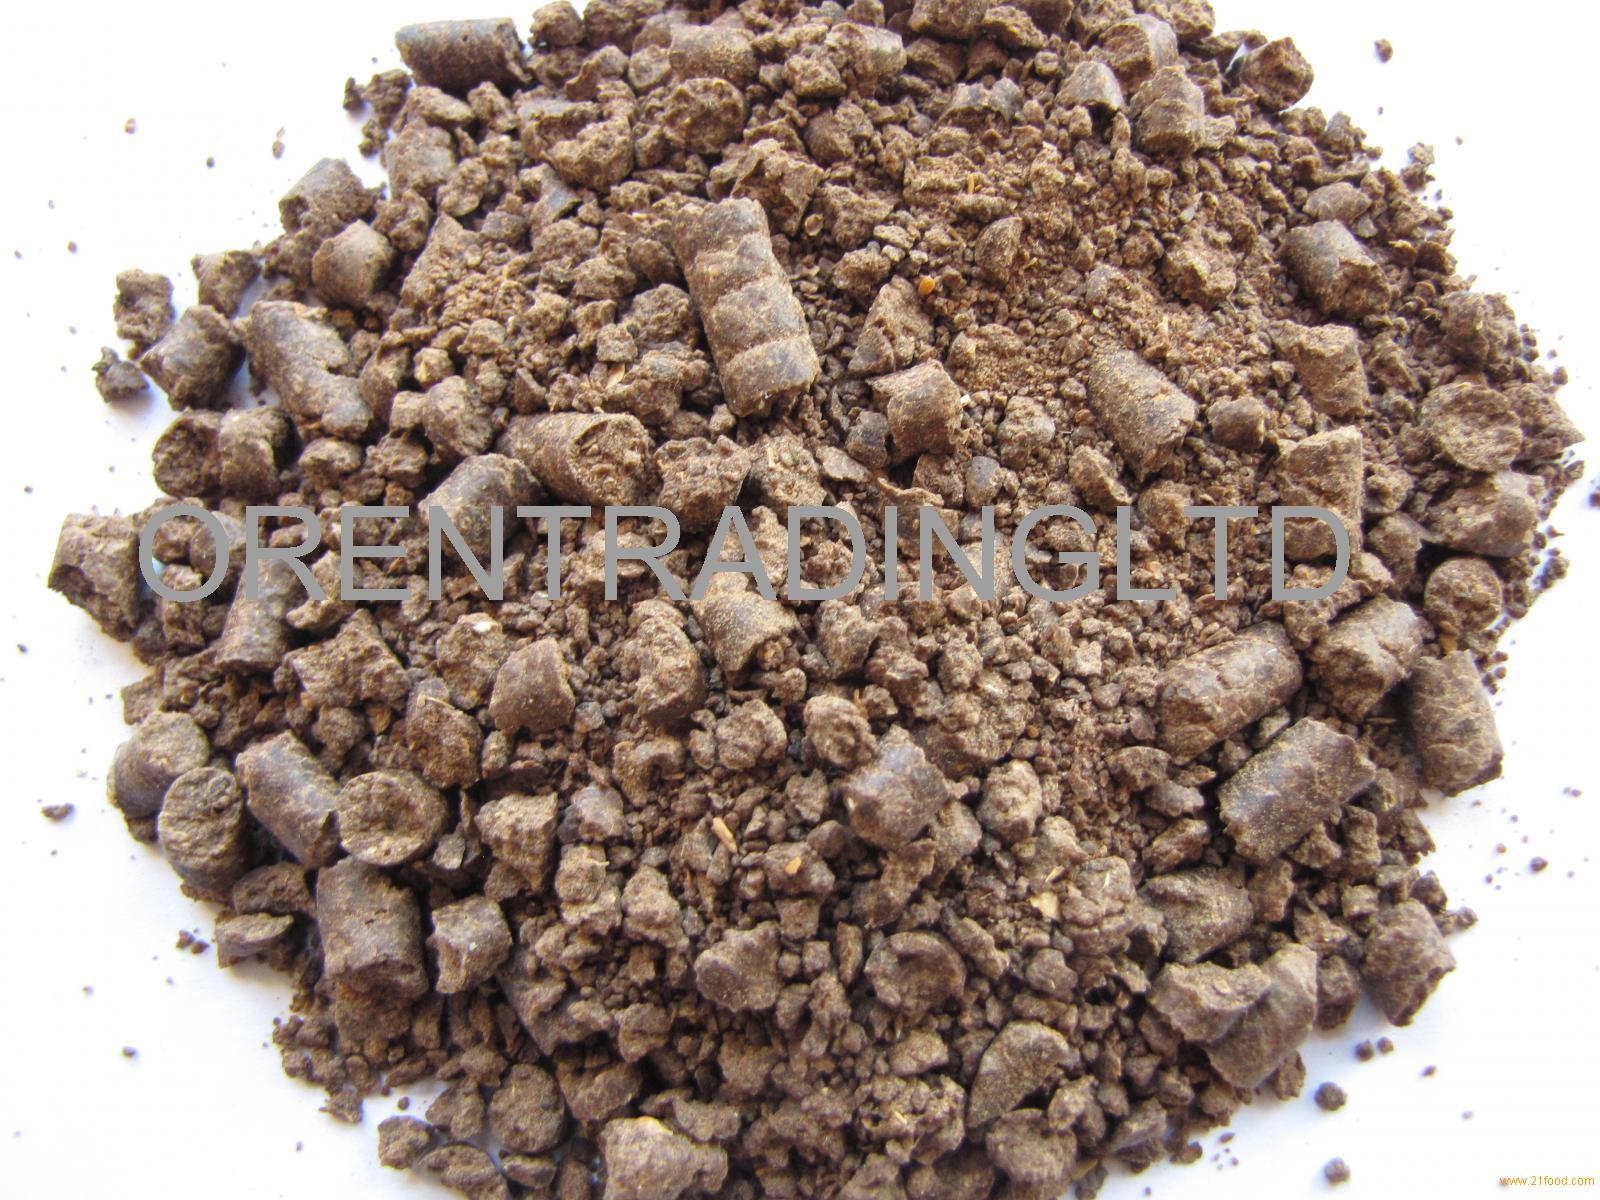 Groundnut Seed Meal